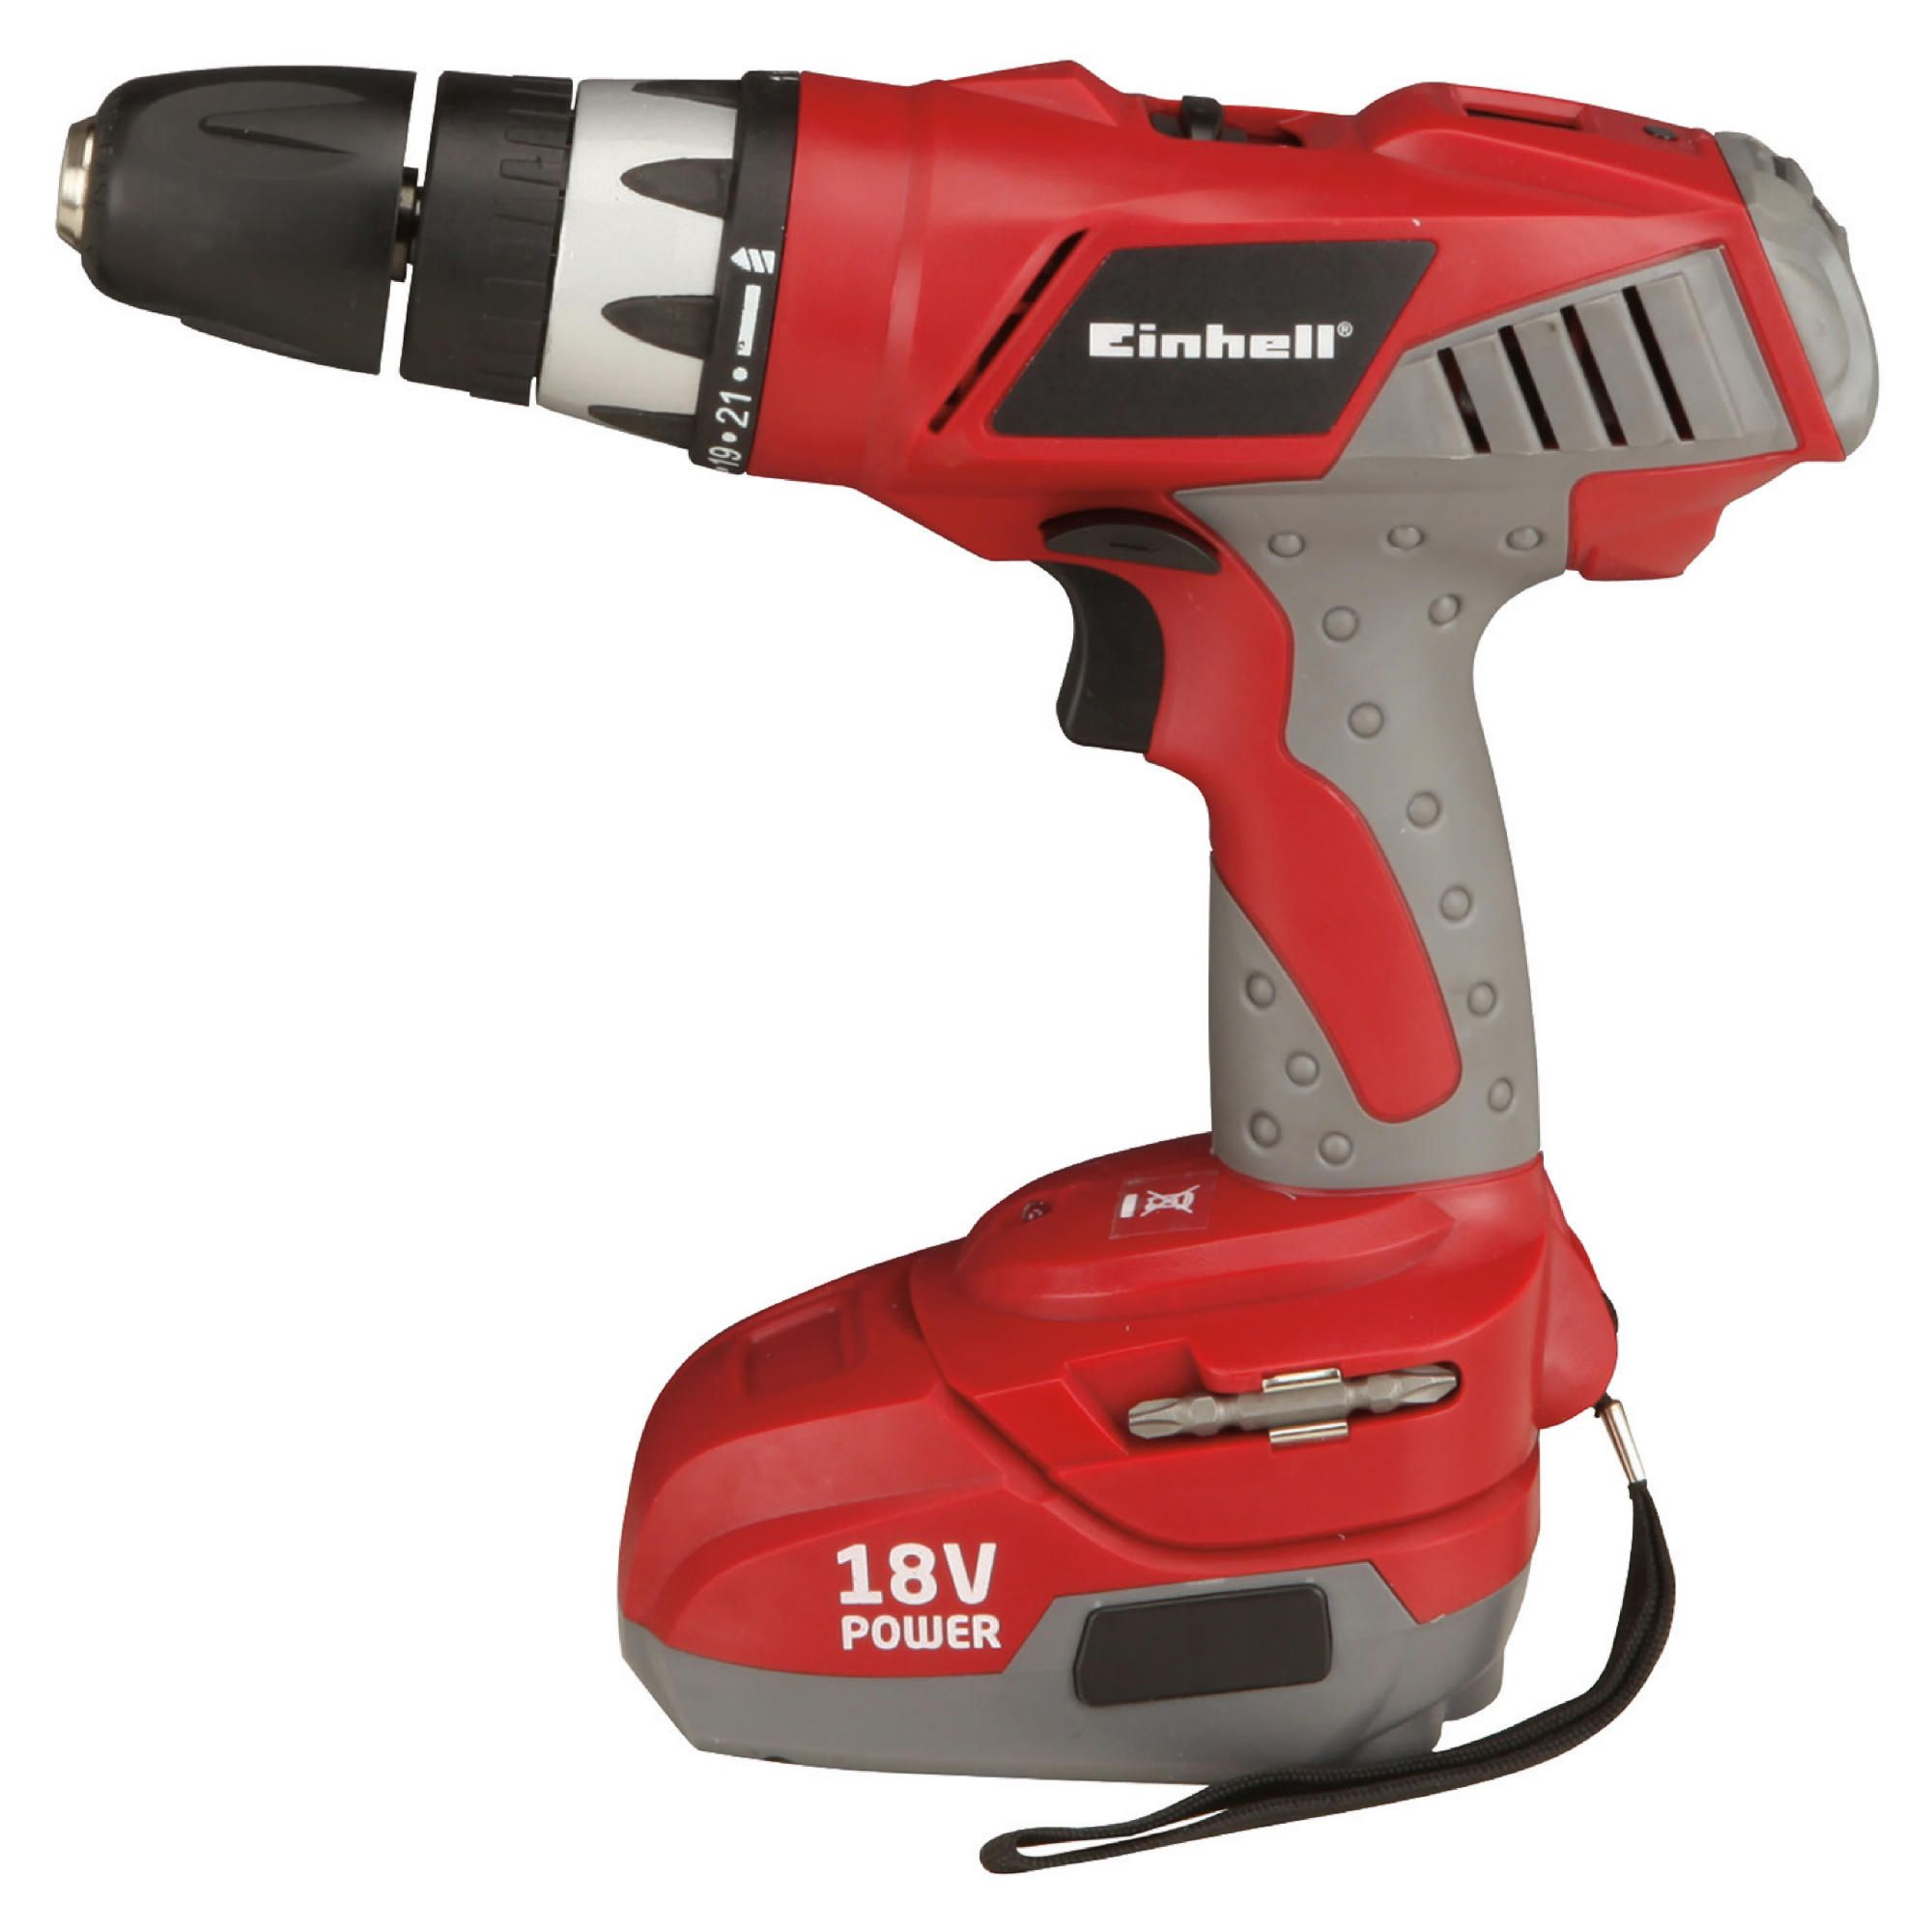 einhell red 18v cordless impact drill lowest prices on power drills. Black Bedroom Furniture Sets. Home Design Ideas